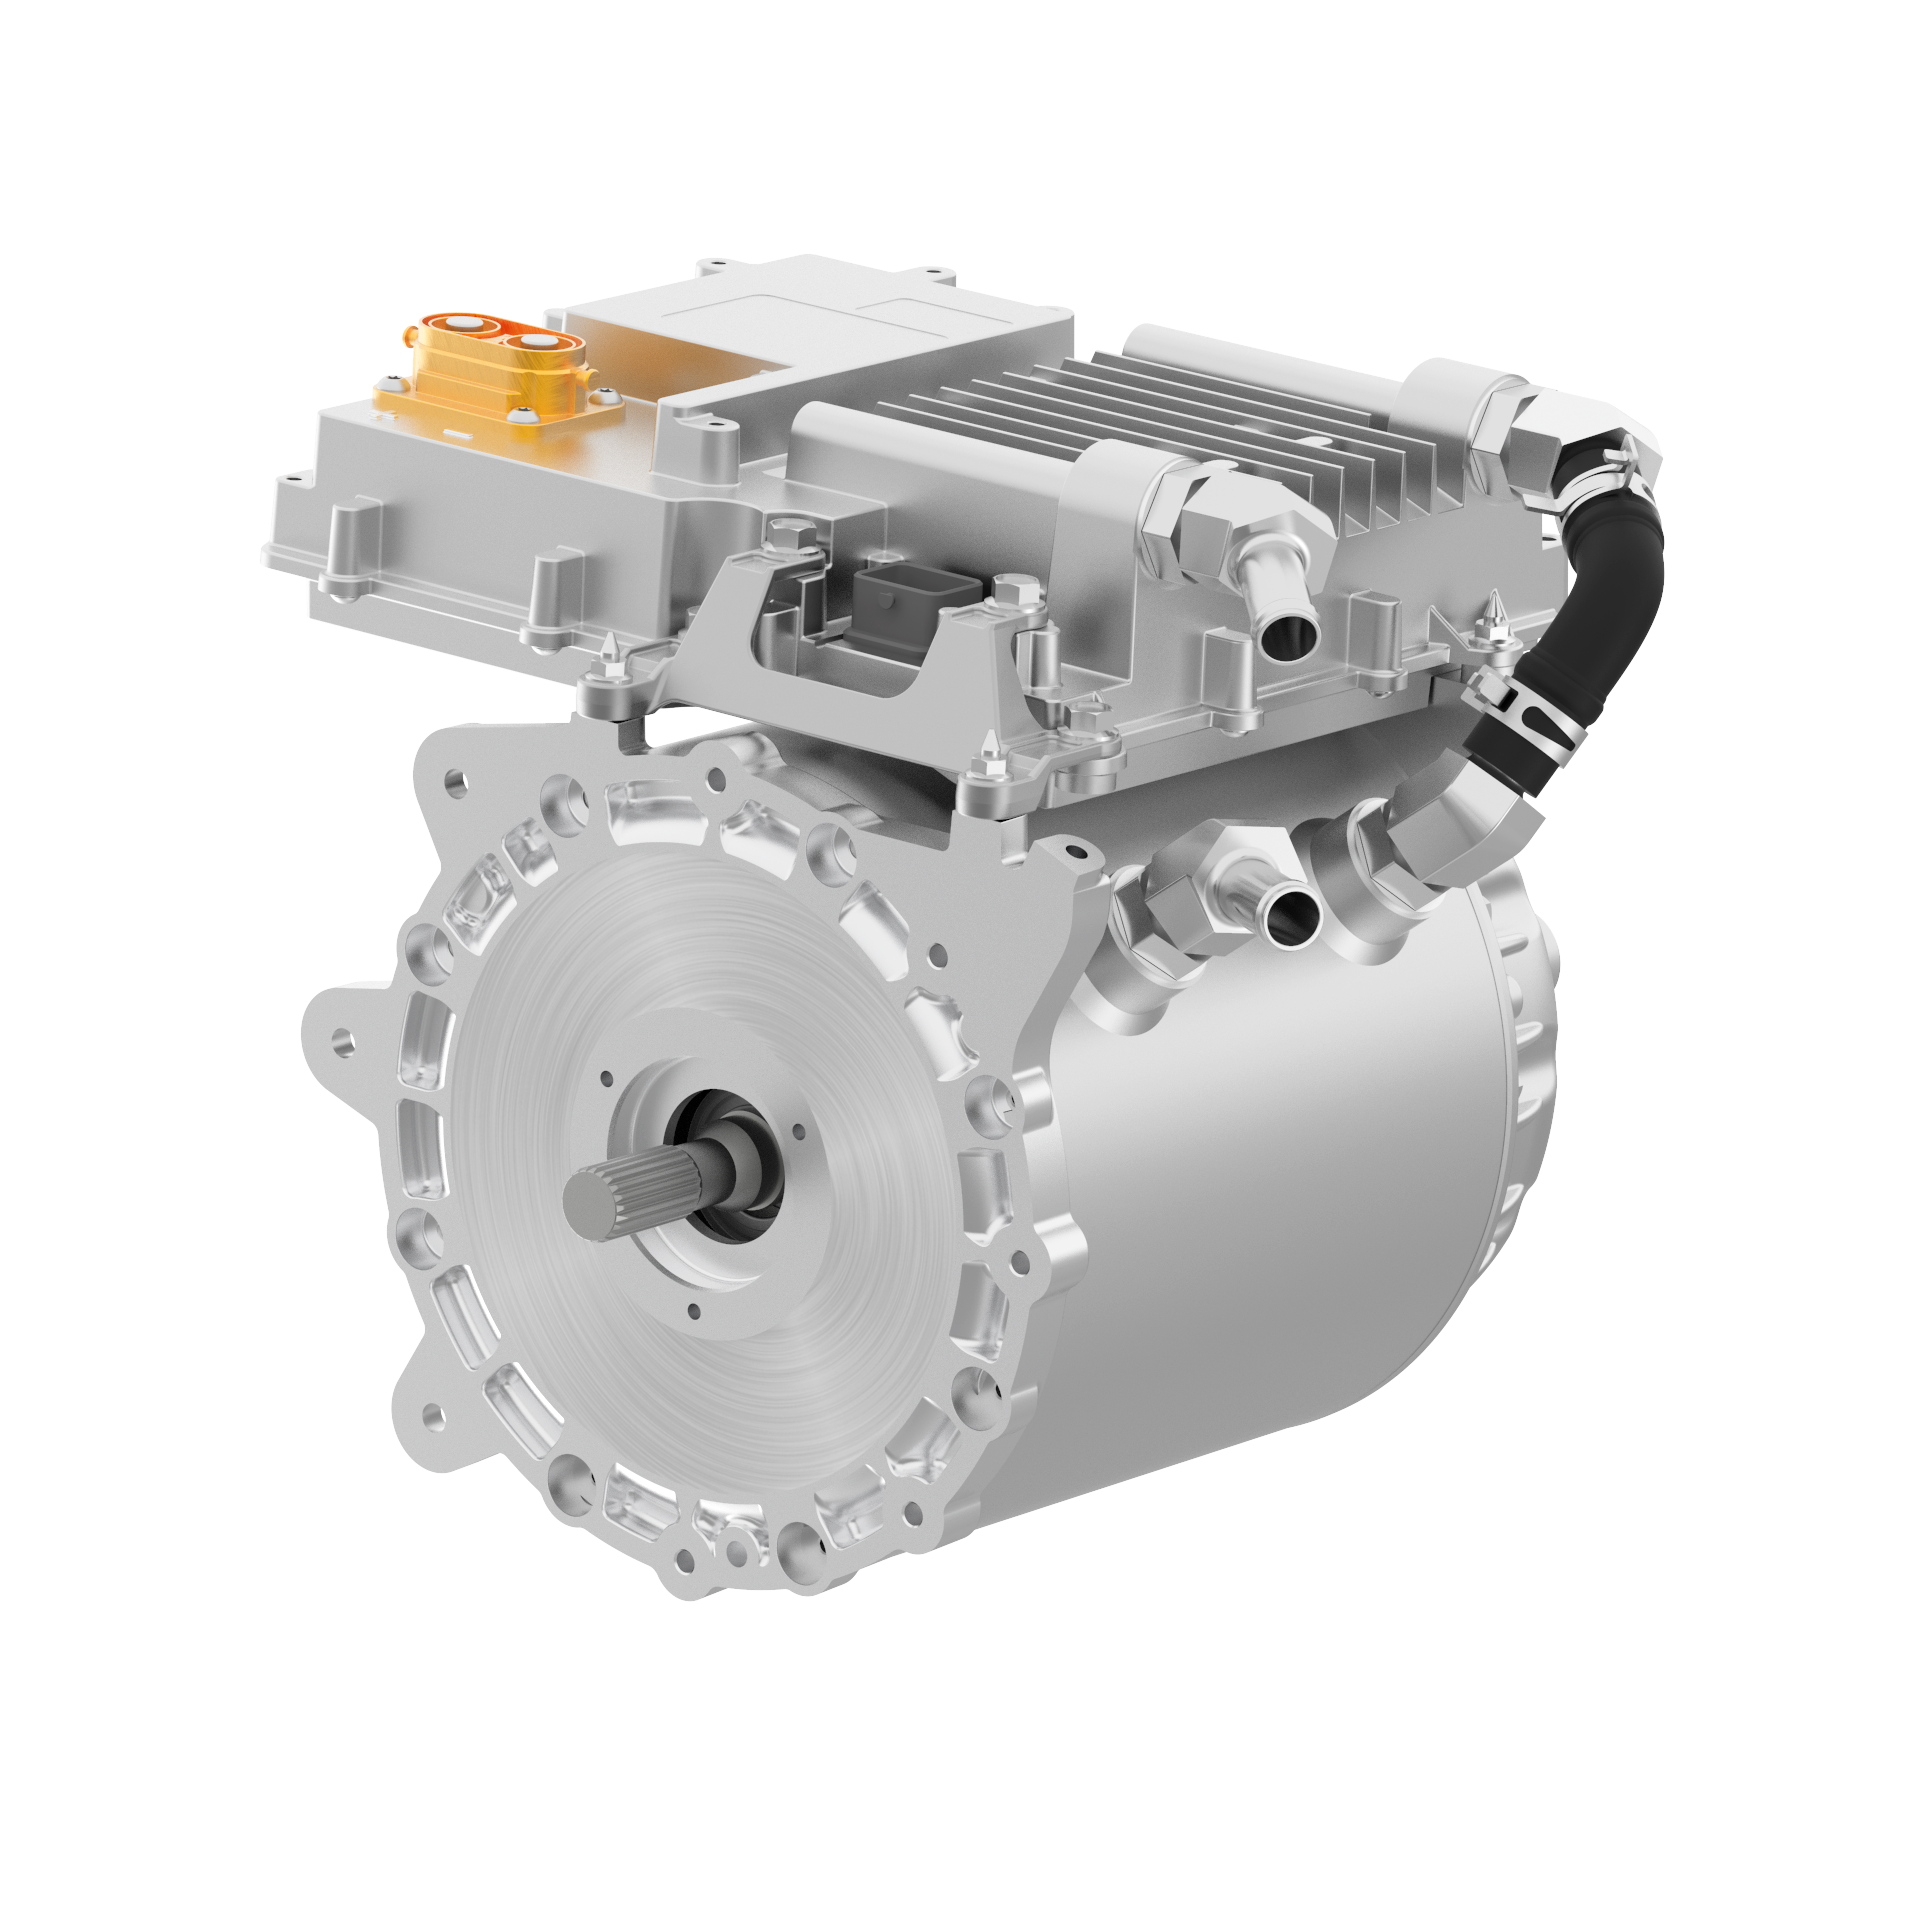 High Voltage E Motors And Inverter Systems Dana Tm4 In 2020 Electric Cars Commercial Vehicle Medium Duty Trucks